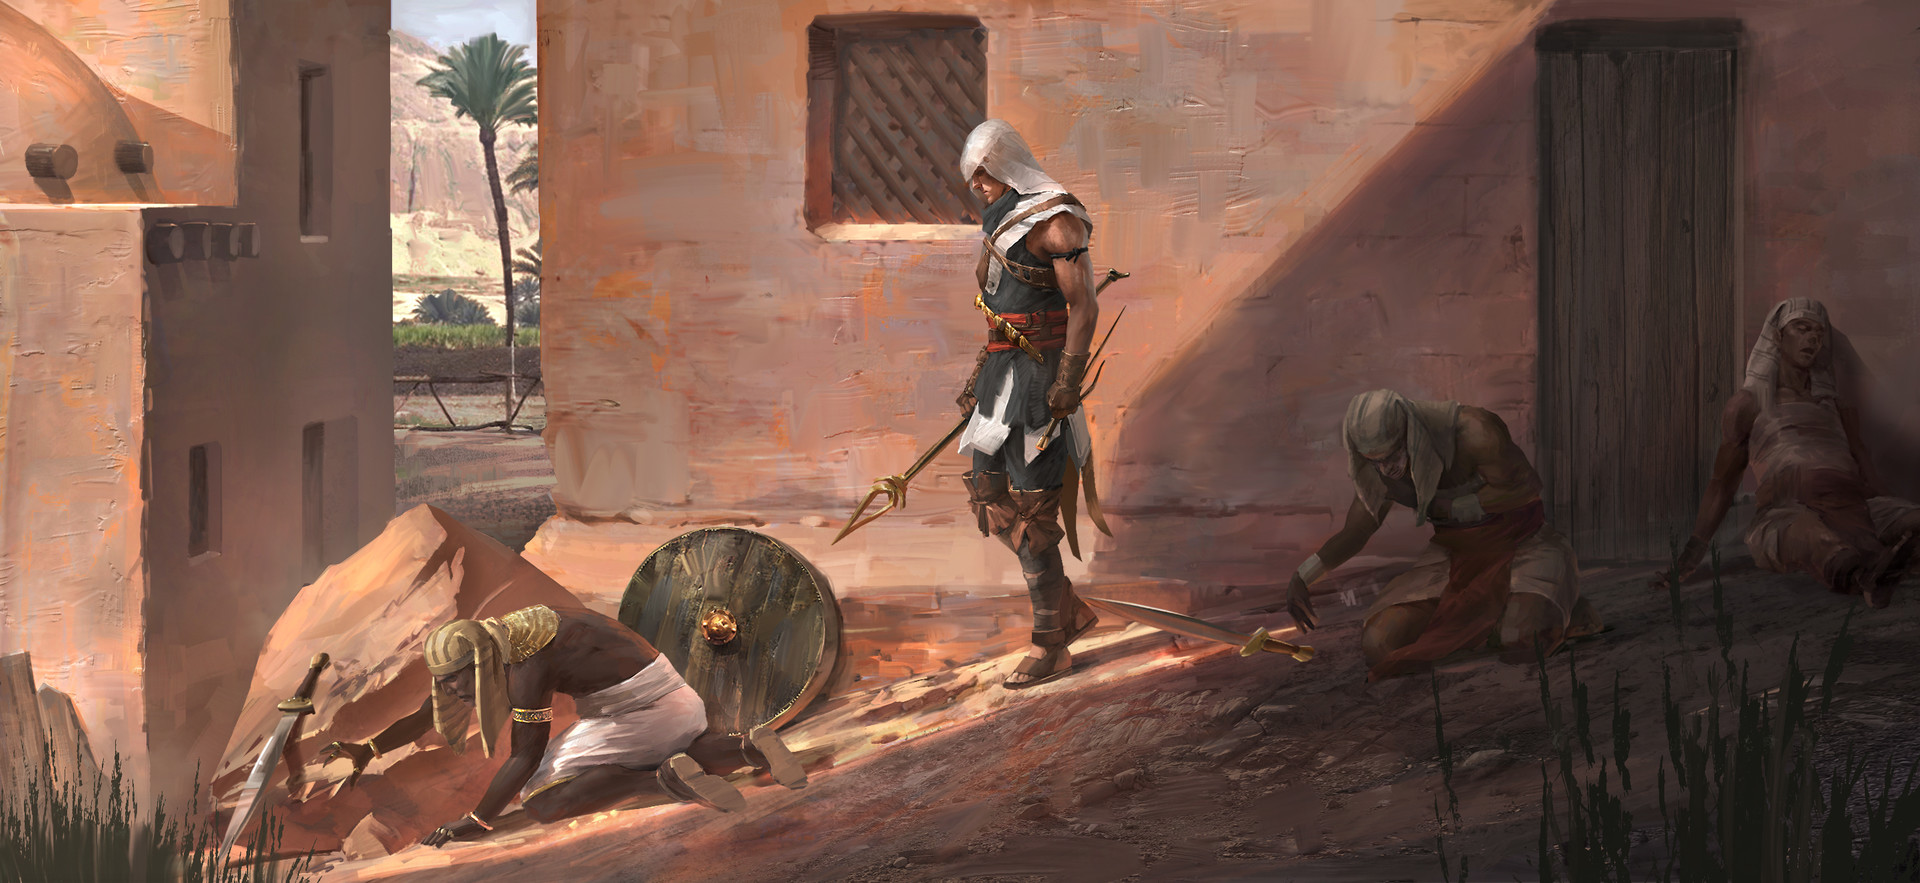 Assassin's Creed Origins may have been outed